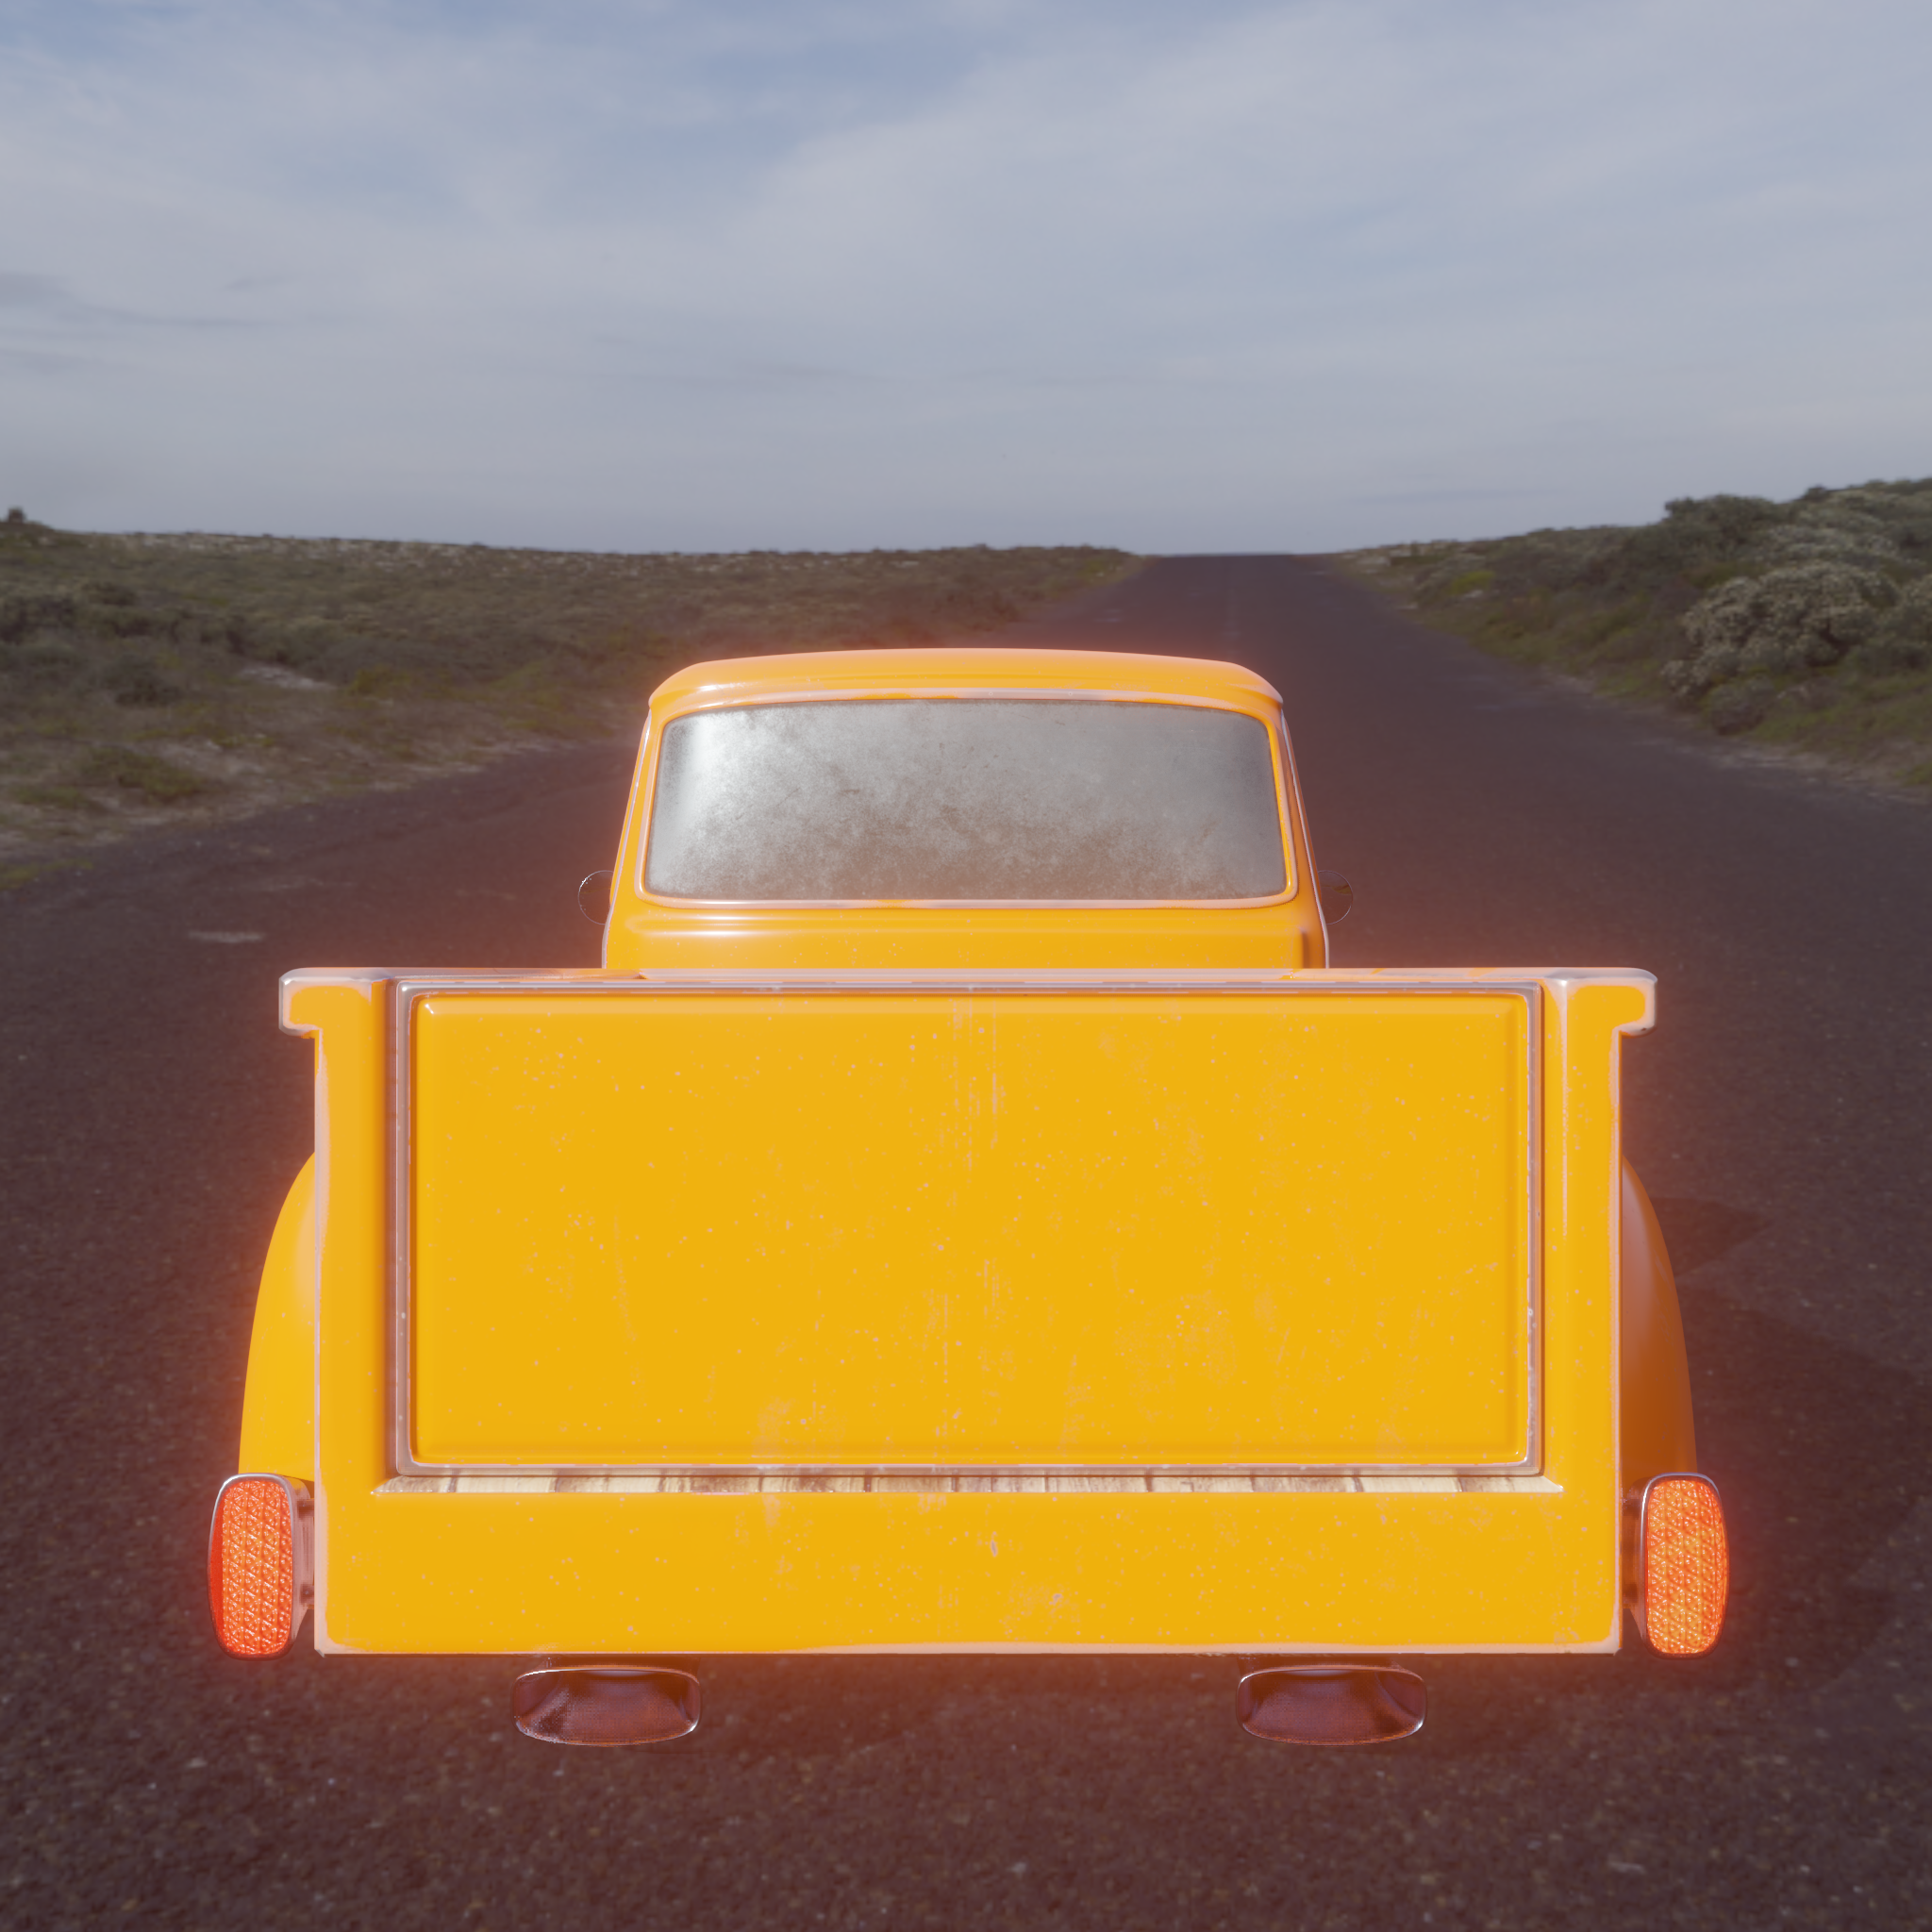 1950's F100 Pickup Truck preview image 4